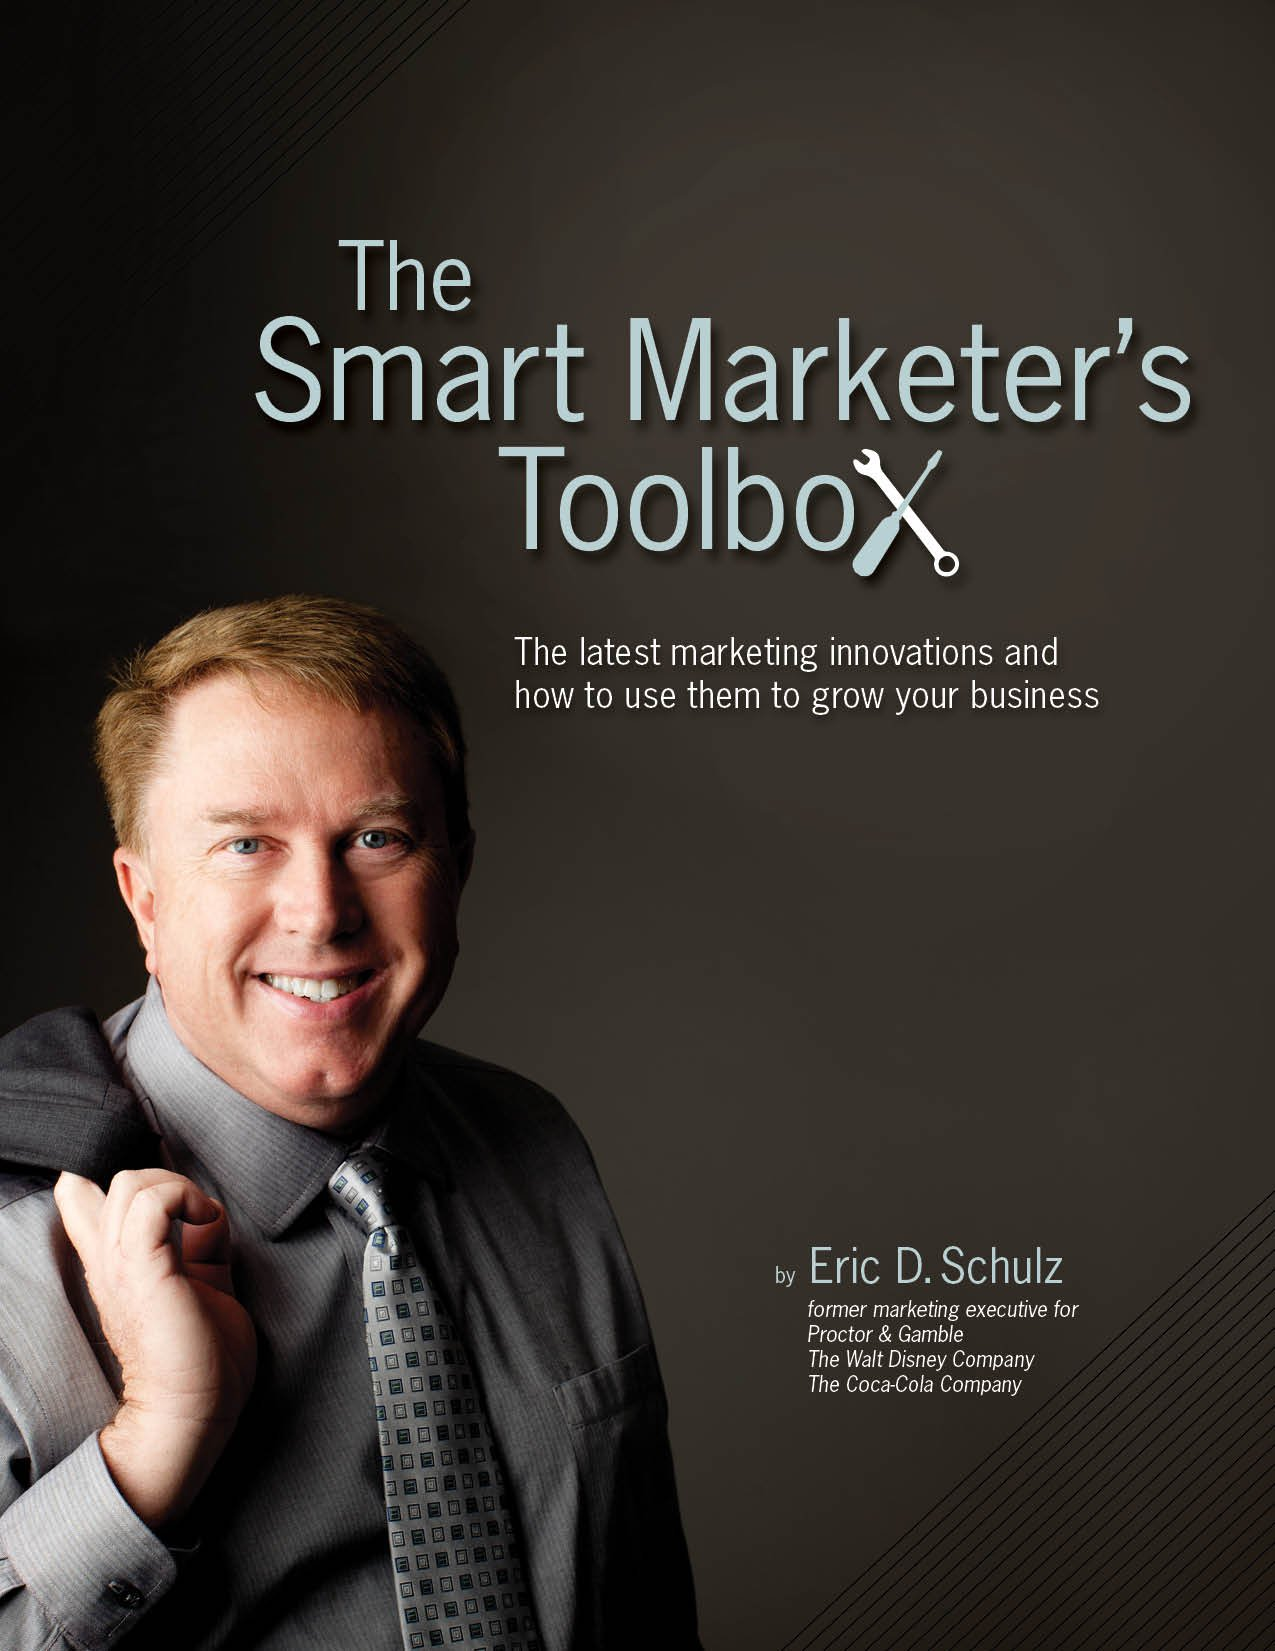 The Smart Marketer's Toolbox - The latest marketing innovations and how to use them to grow your business